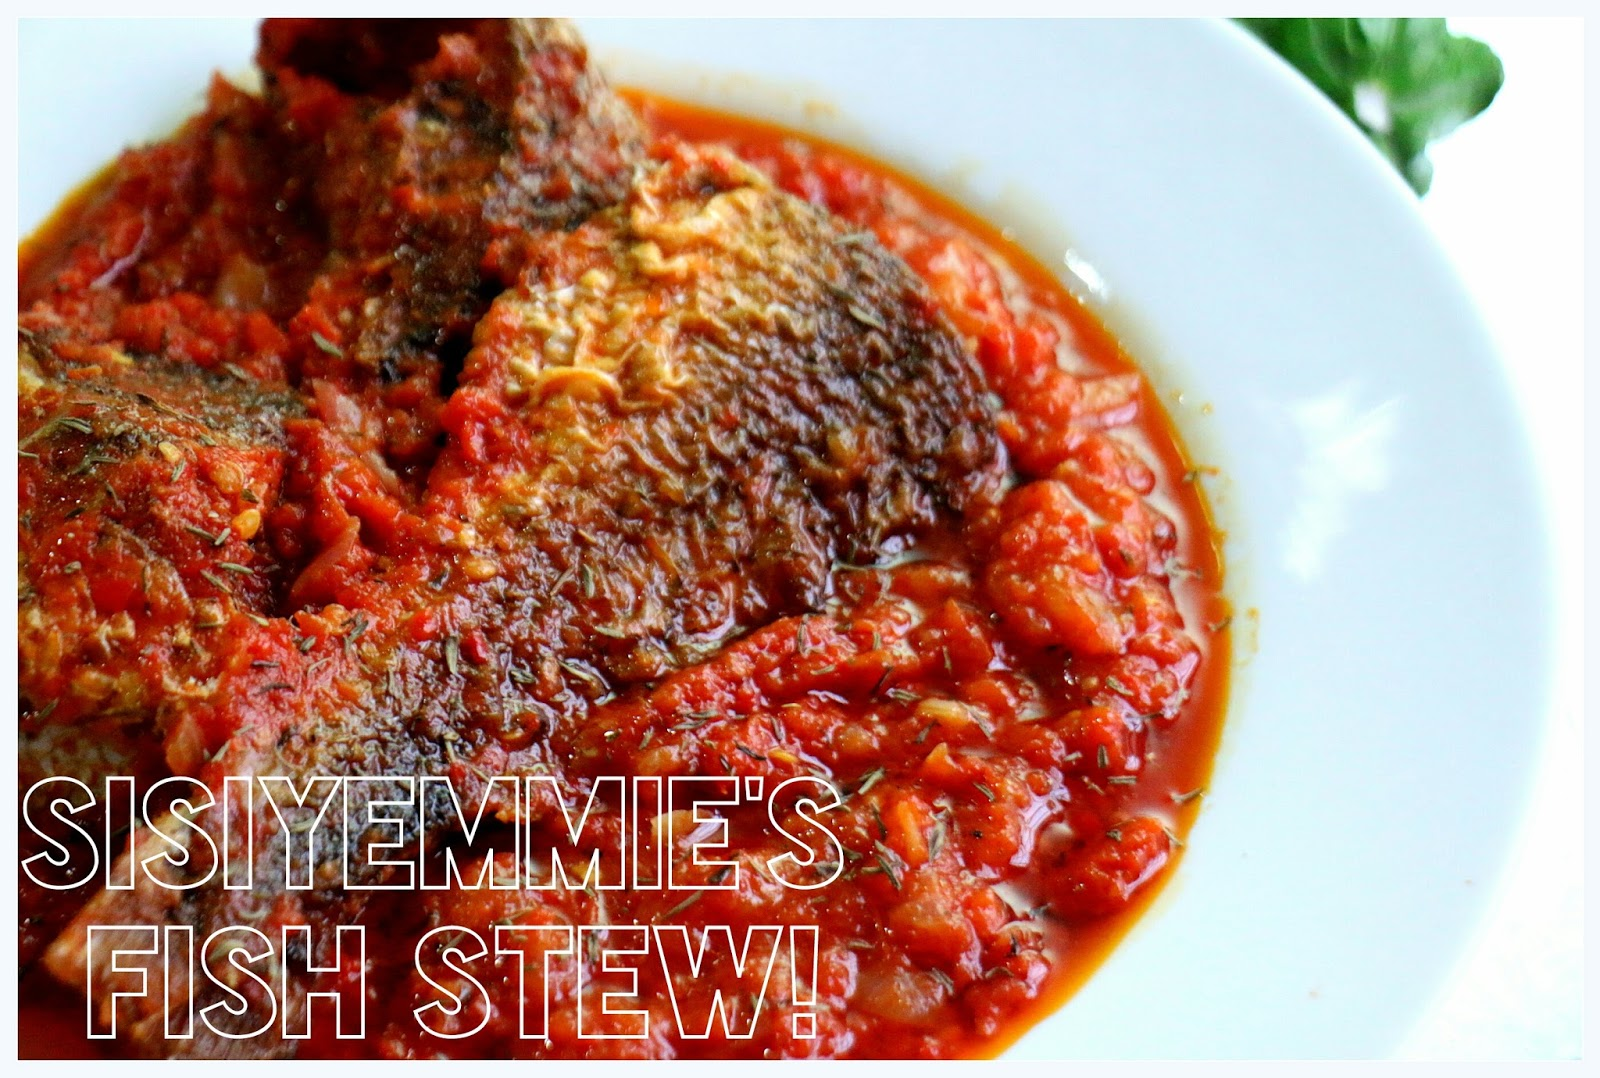 My fish stew recipe e a s y sisiyemmie nigerian food my fish stew recipe e a s y food forumfinder Image collections